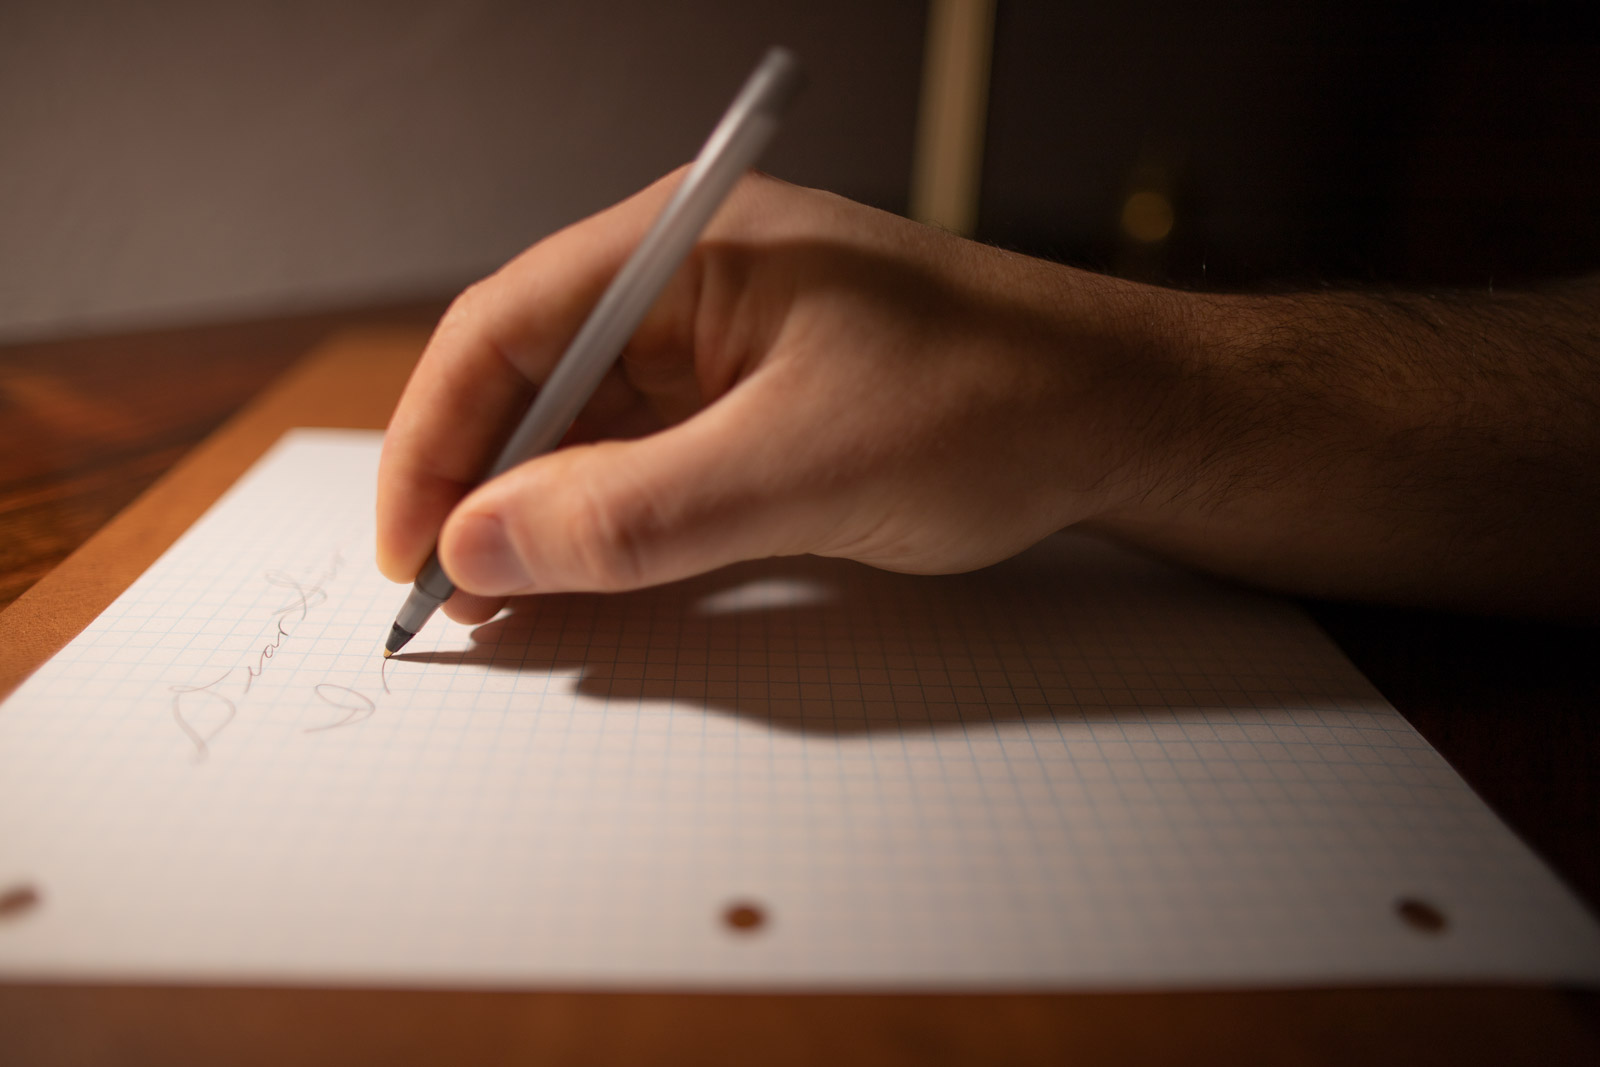 A hand dilligently working to improve its penmanship